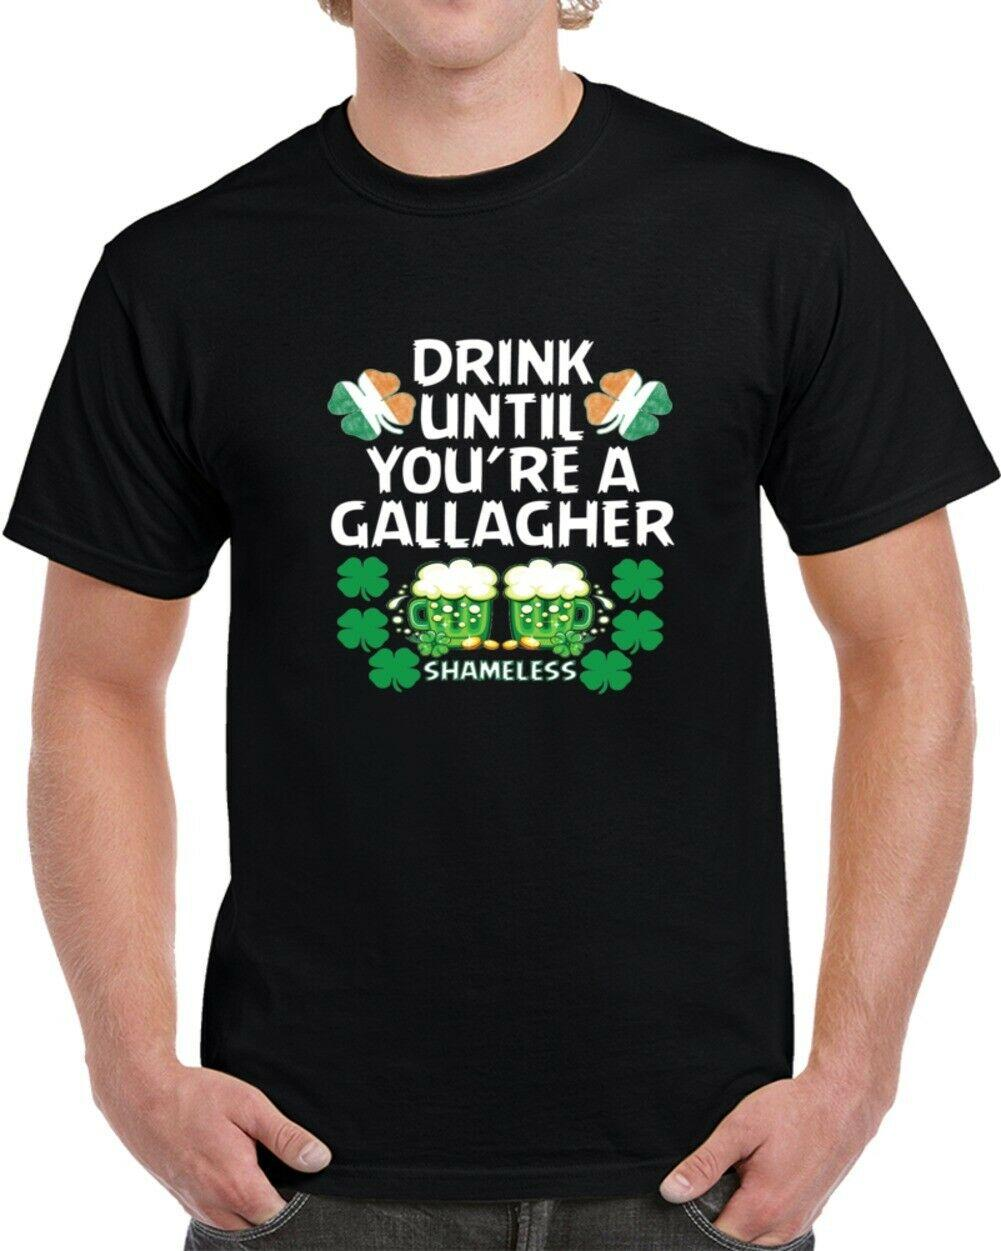 Drink Until You're A Gallagher Shameless St Patrick's Tshirt Men Women Unisex Fashion tshirt Free Shipping Funny Cool Top Tee White